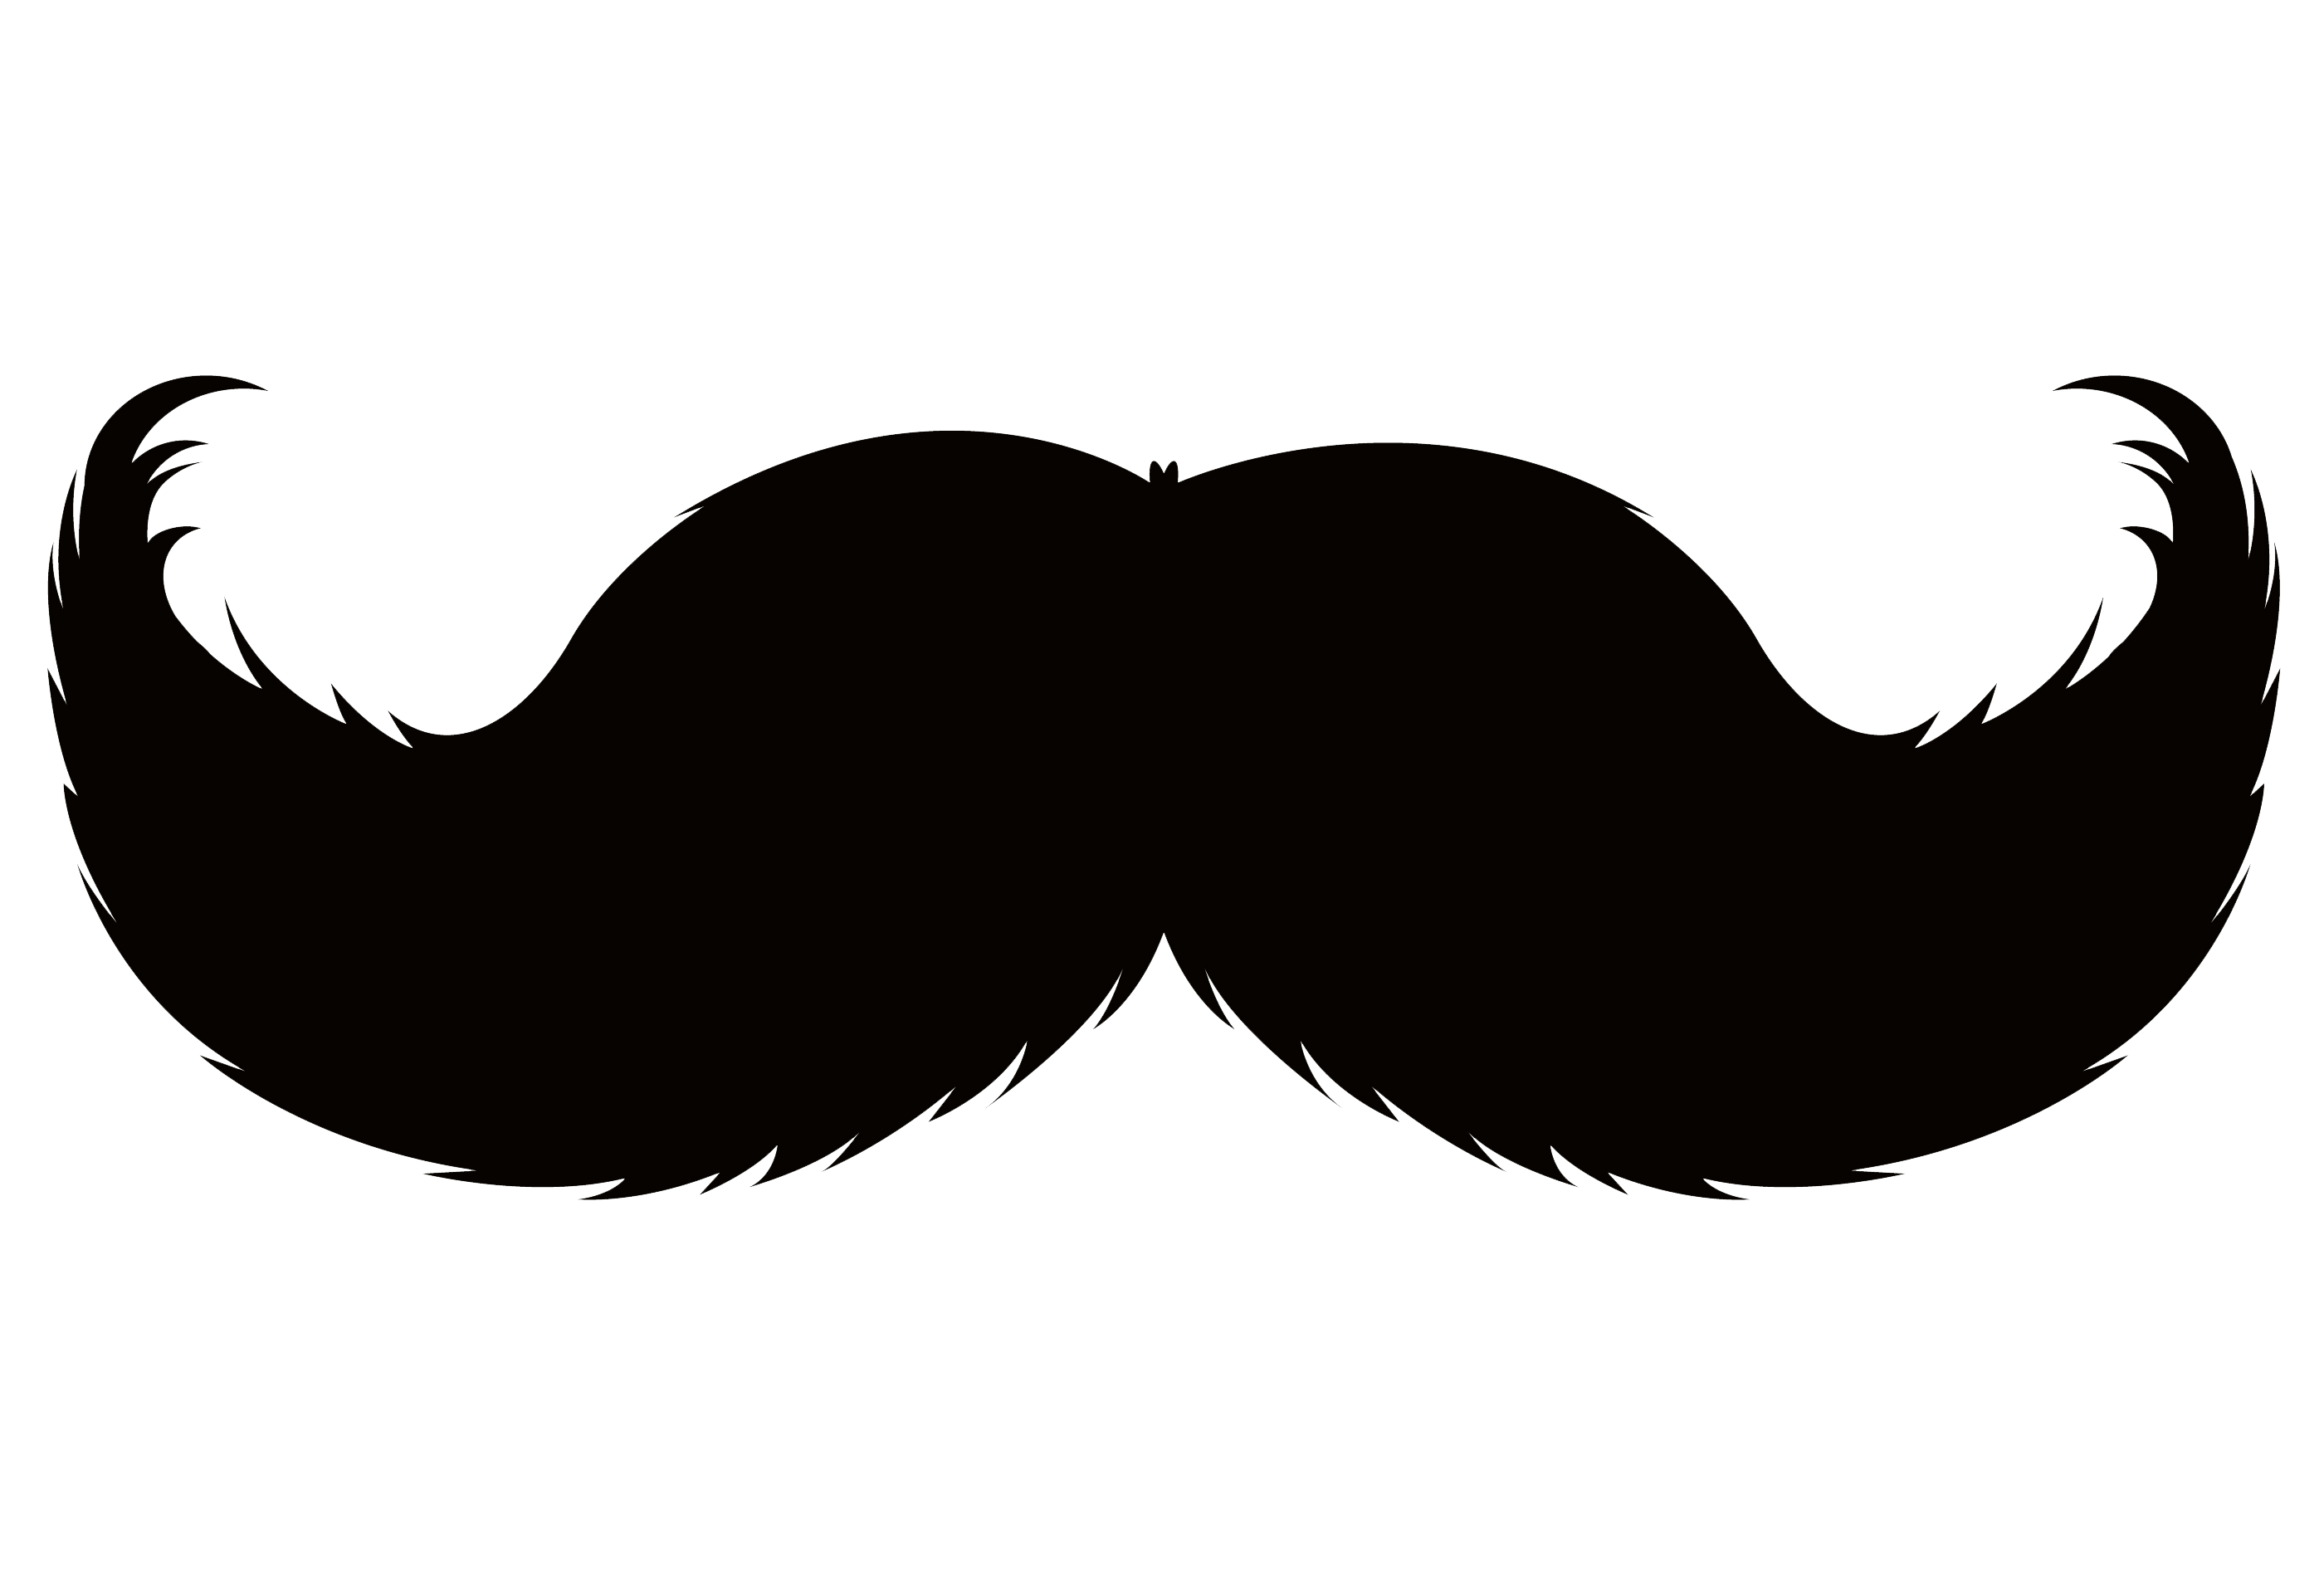 Mexican Mustaches - ClipArt Best - 173.3KB